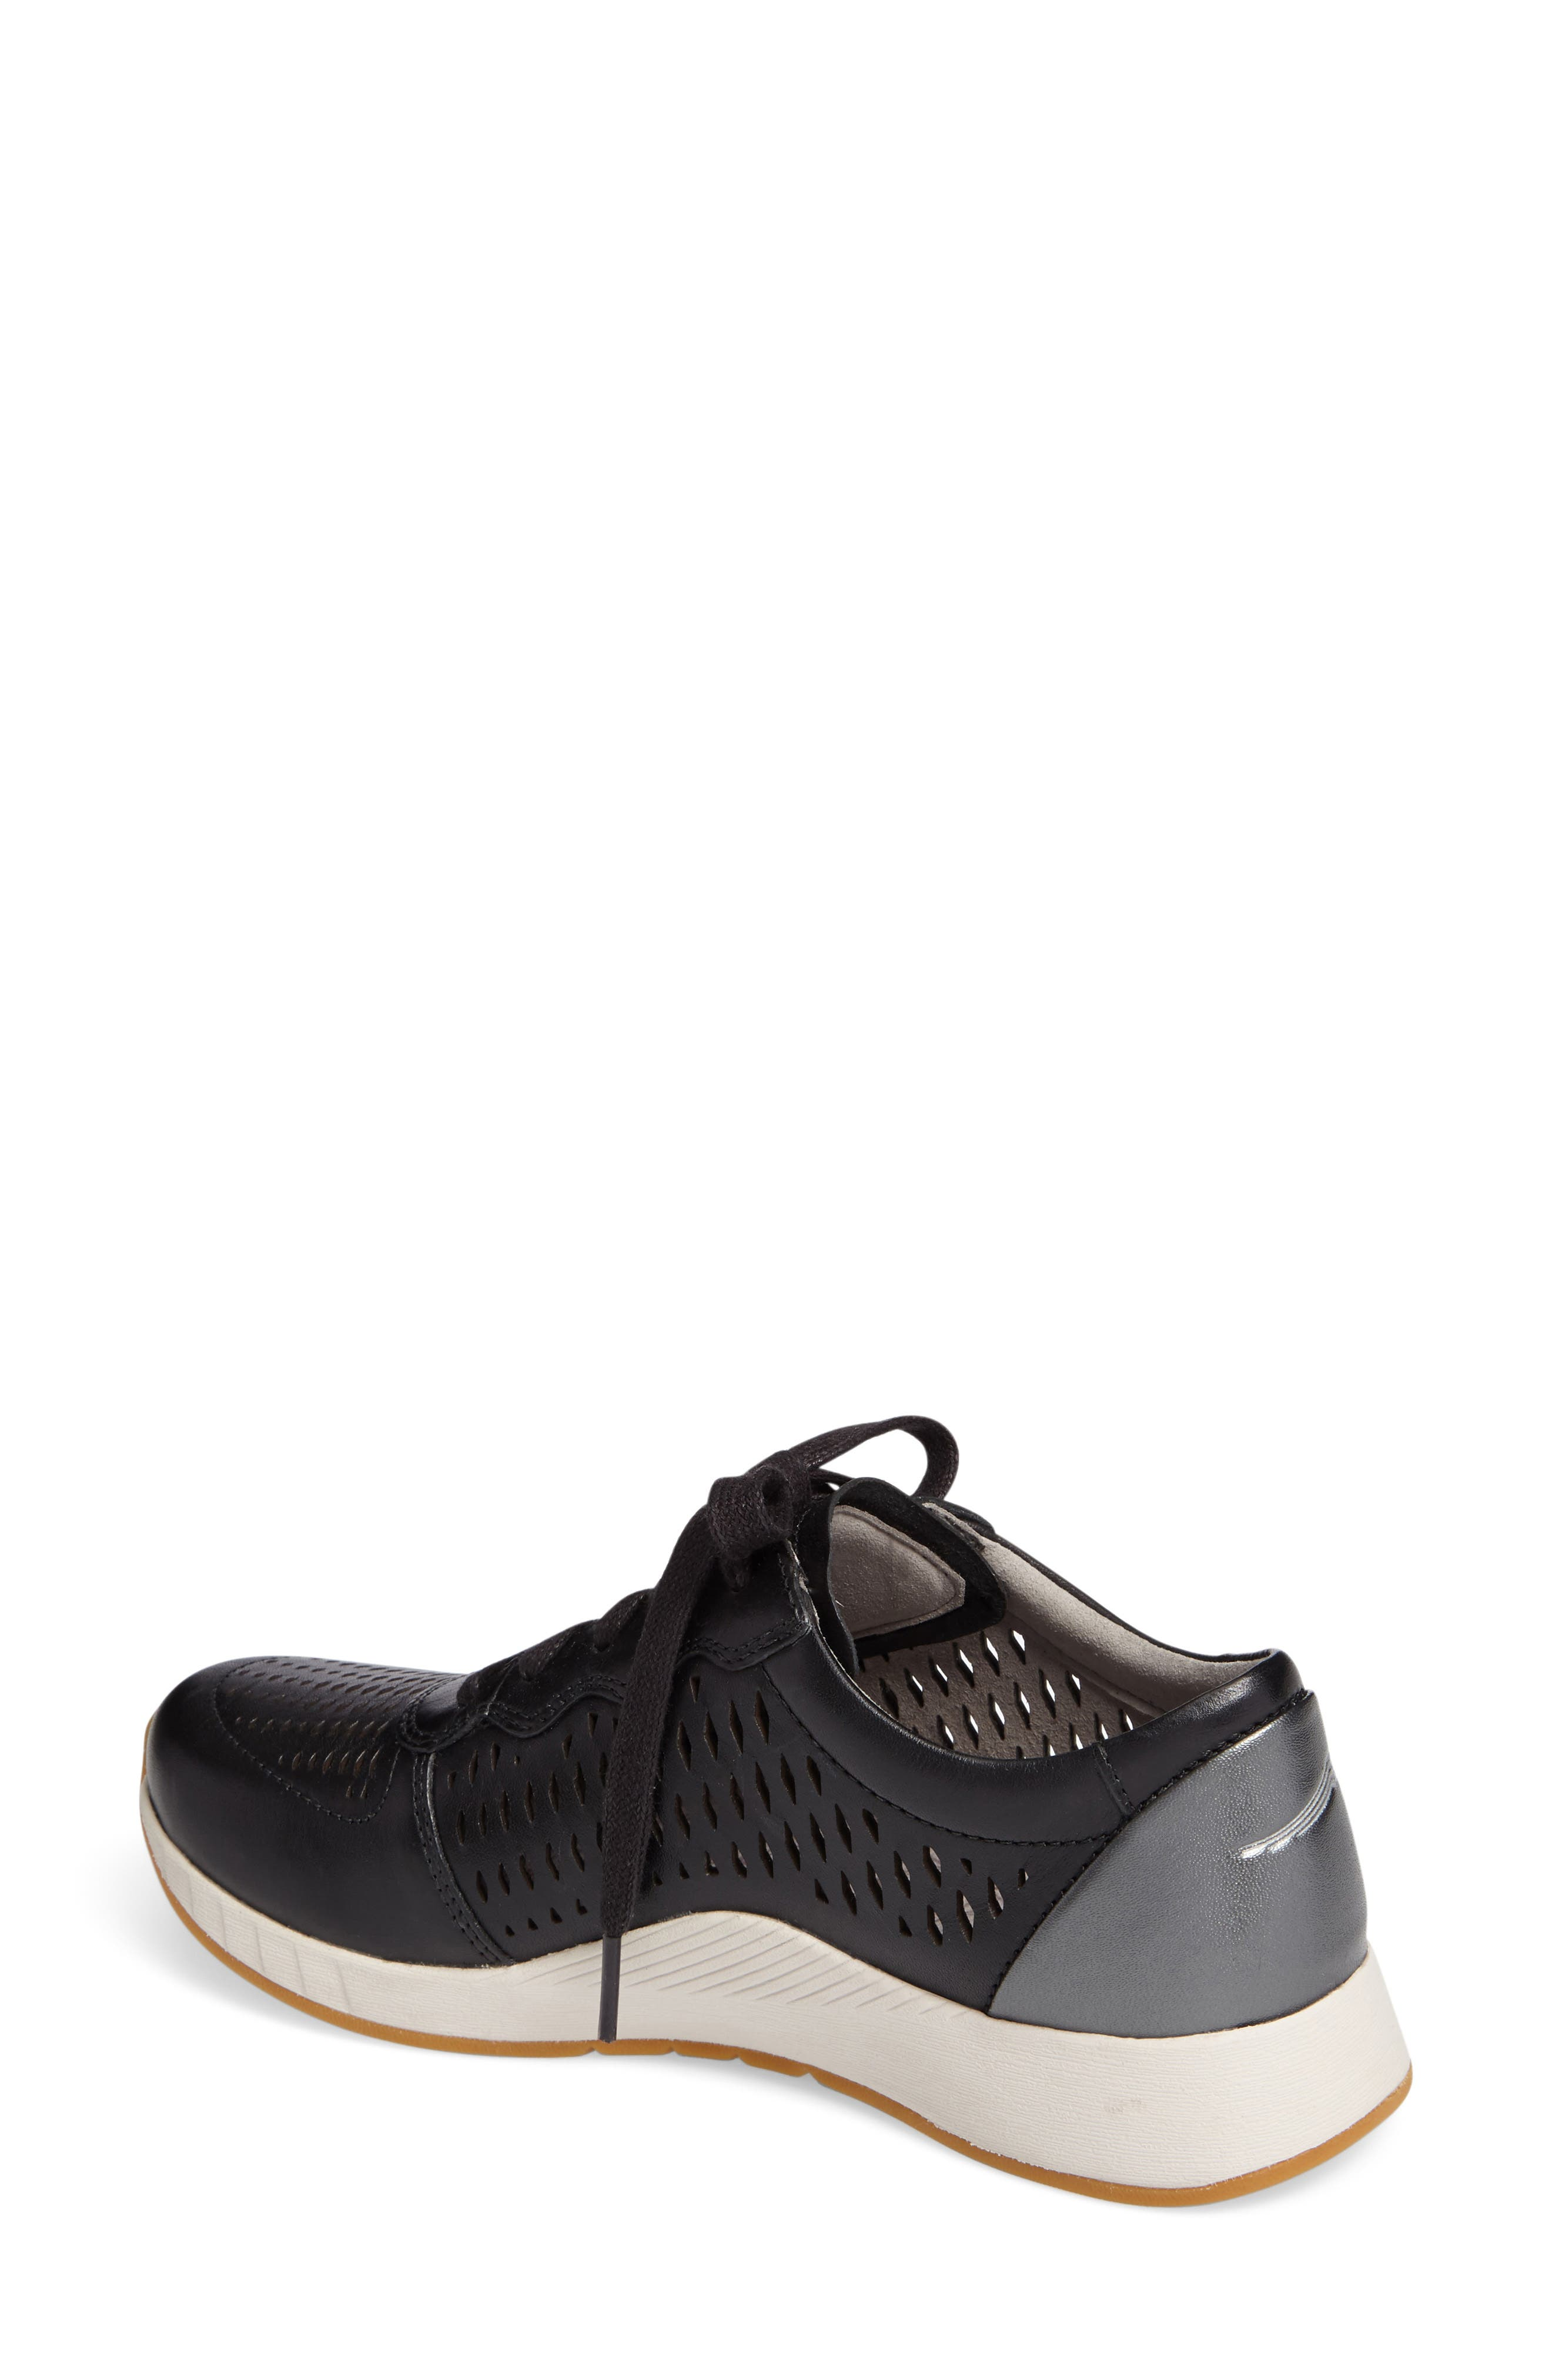 Charlie Perforated Sneaker,                             Alternate thumbnail 2, color,                             Black Leather